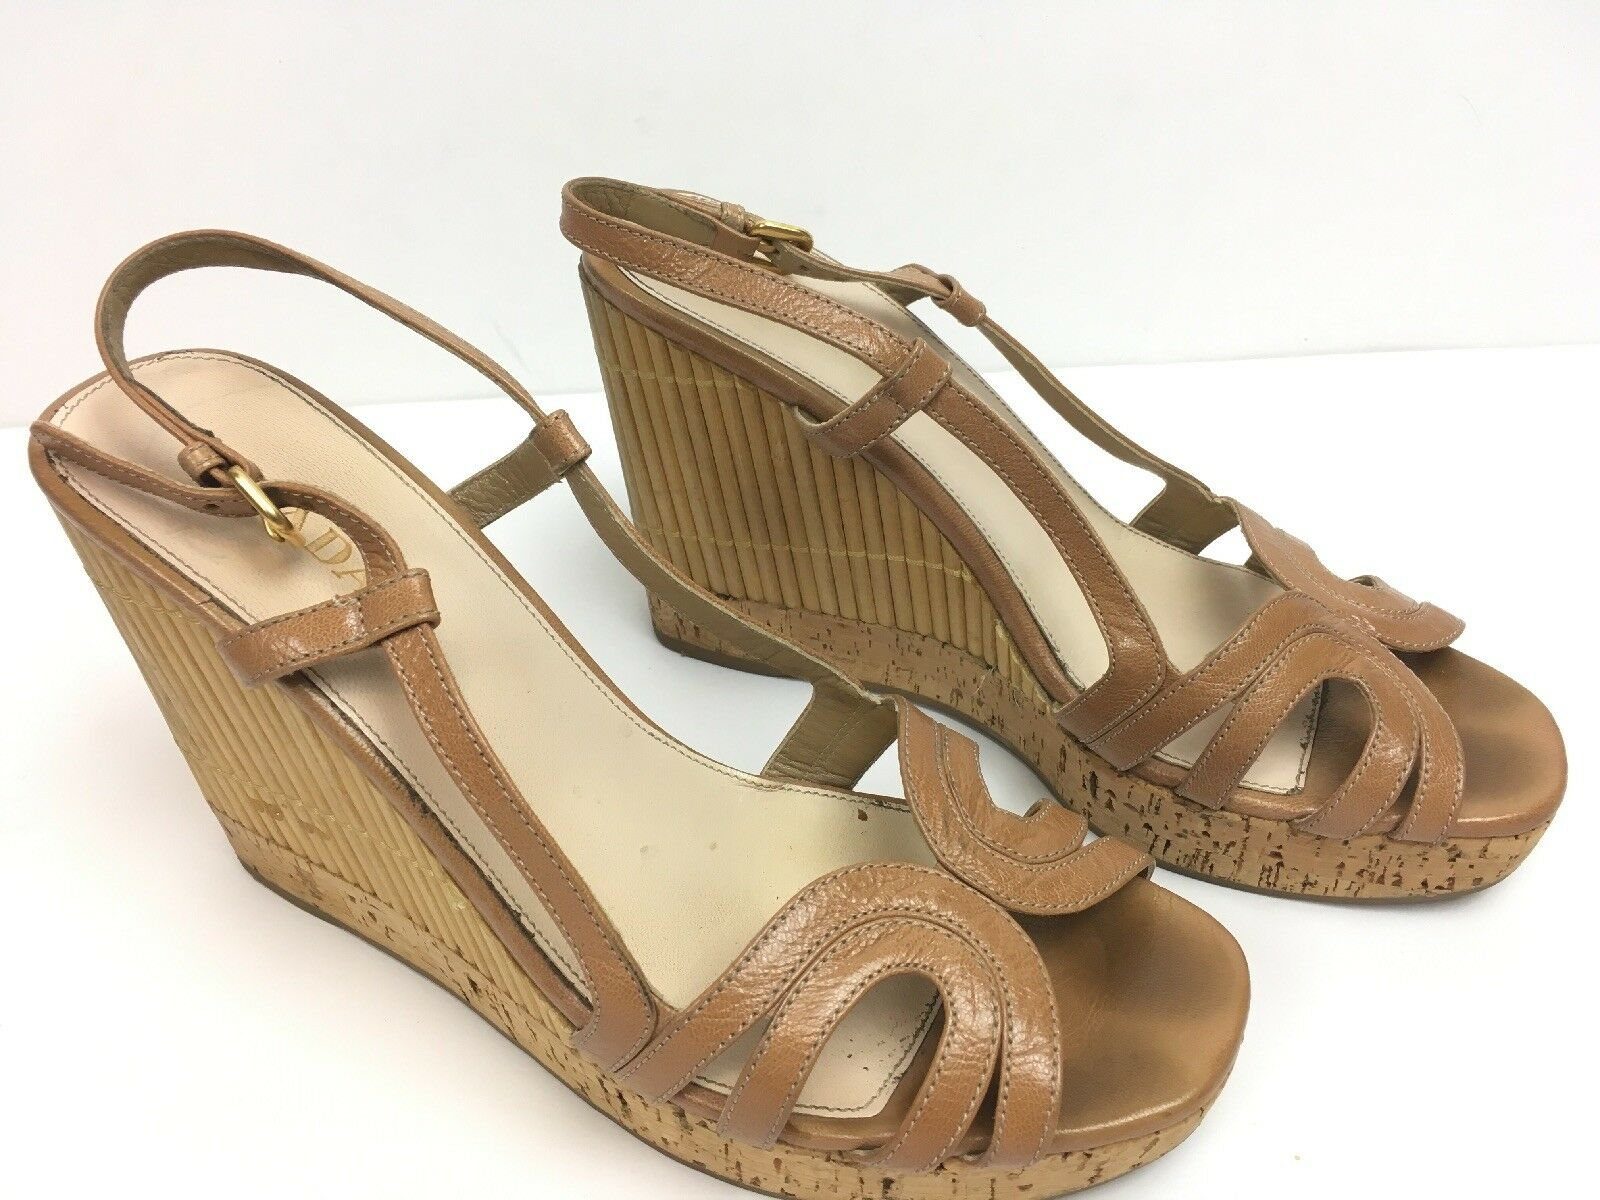 Prada Womens Tan Strappy, Buckle Wedge Bamboo, Cork Platform Sandal Size 40 EU